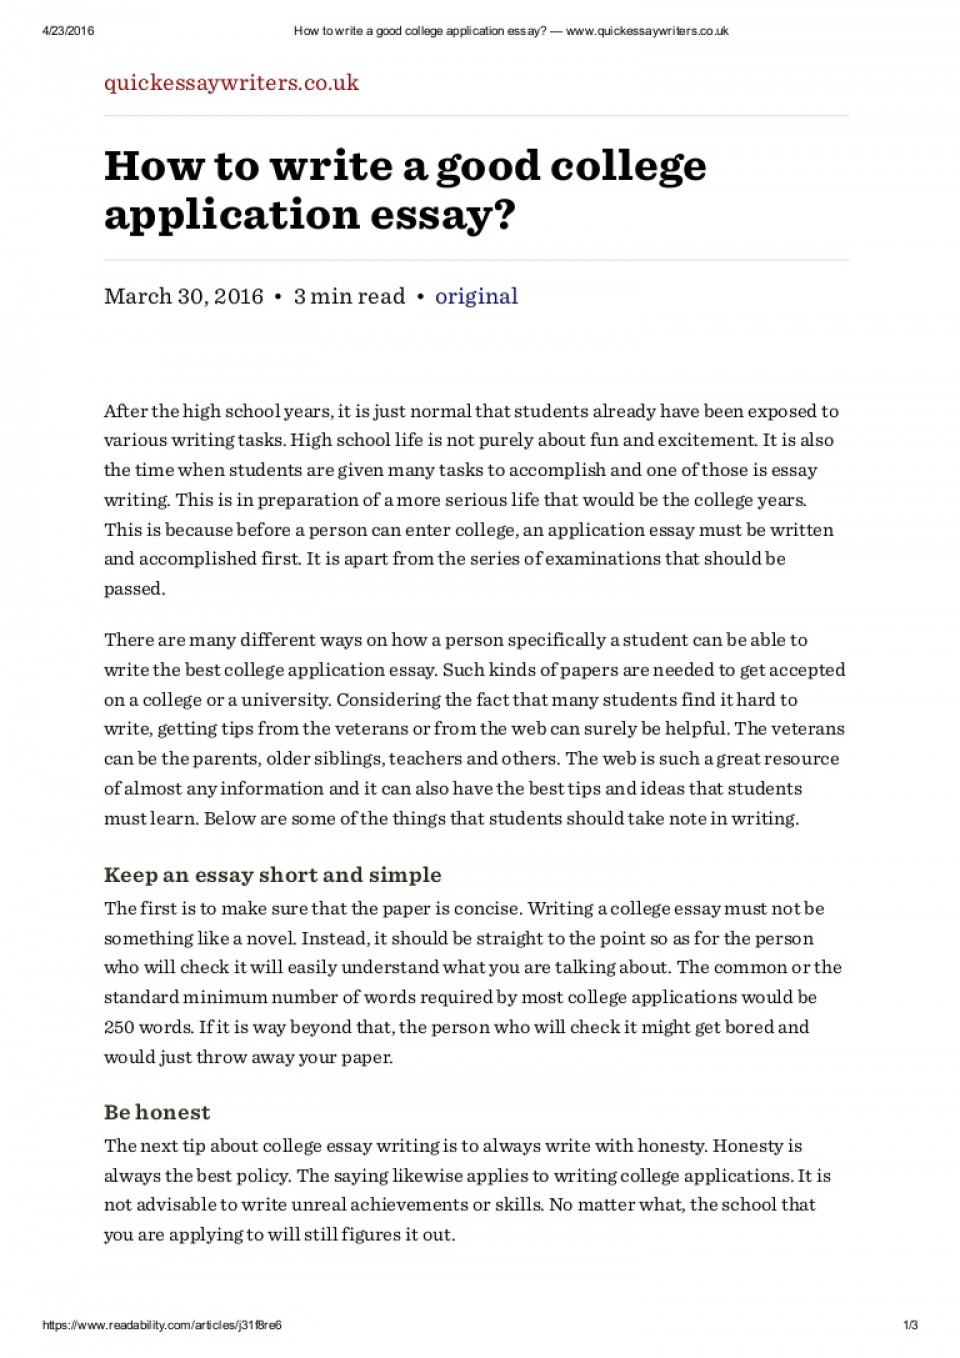 009 Essay Example College Application Howtowriteagoodcollegeapplicationessaywww Thumbnail Unbelievable Admission Writing Tips Admissions Format Heading Good Topics 960